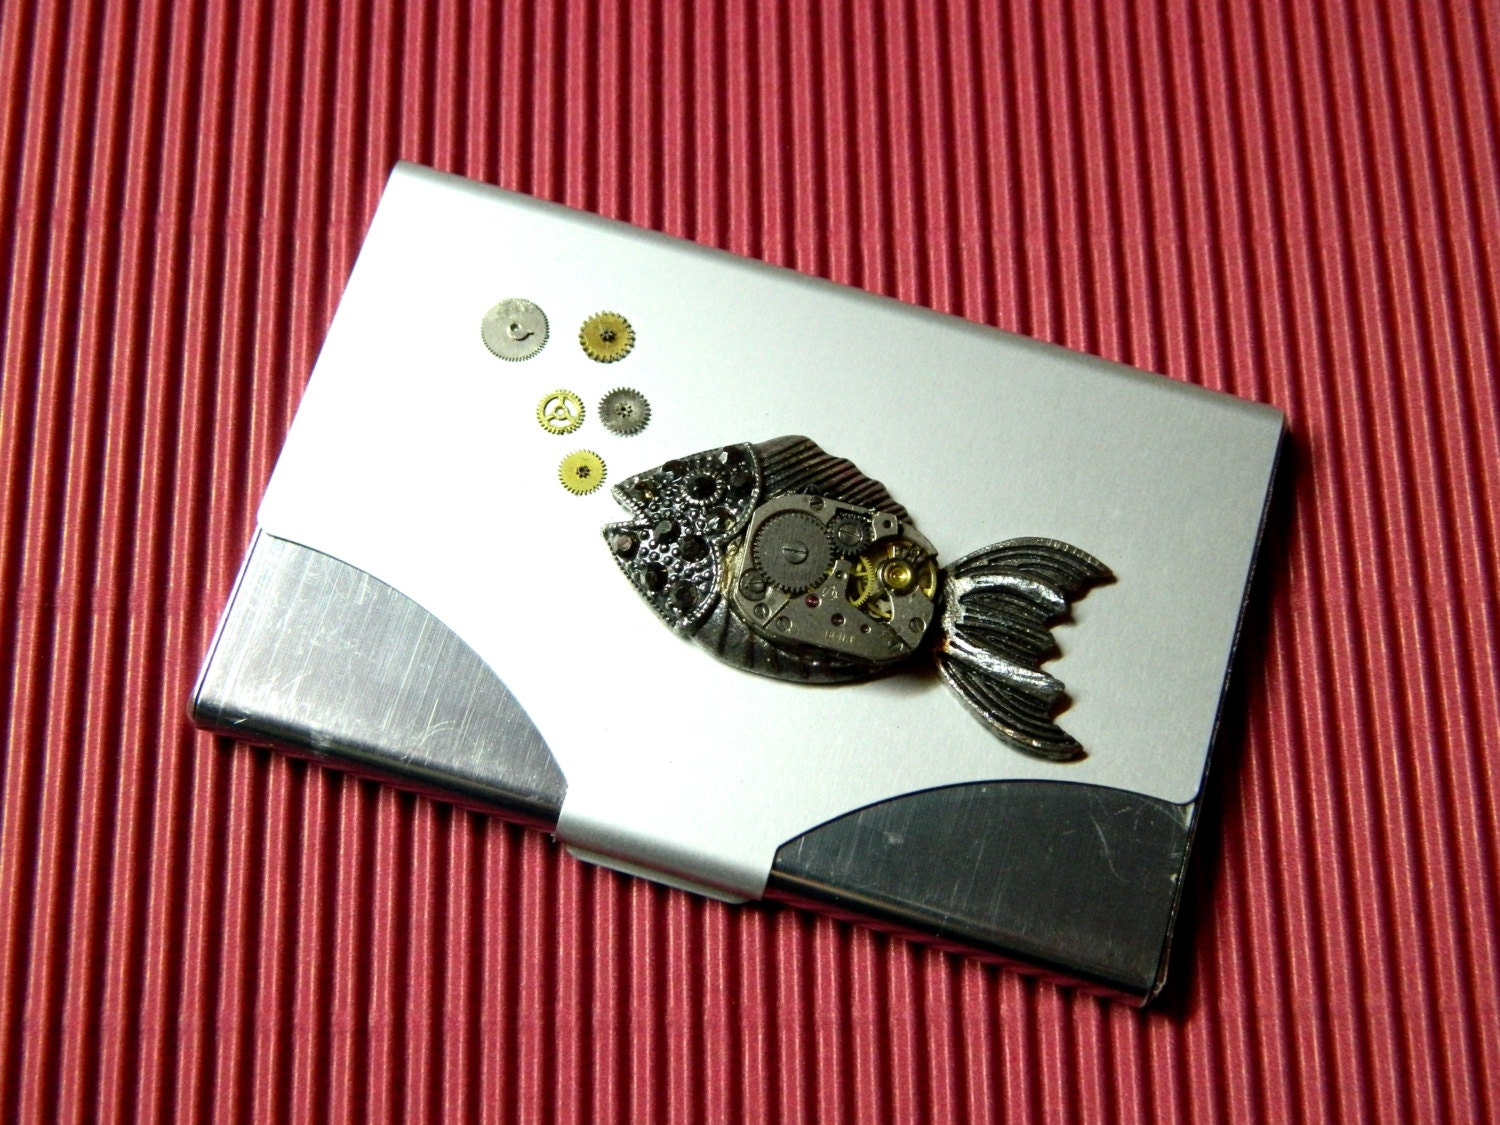 Steampunk business card holder the submerged time for Steampunk business card holder